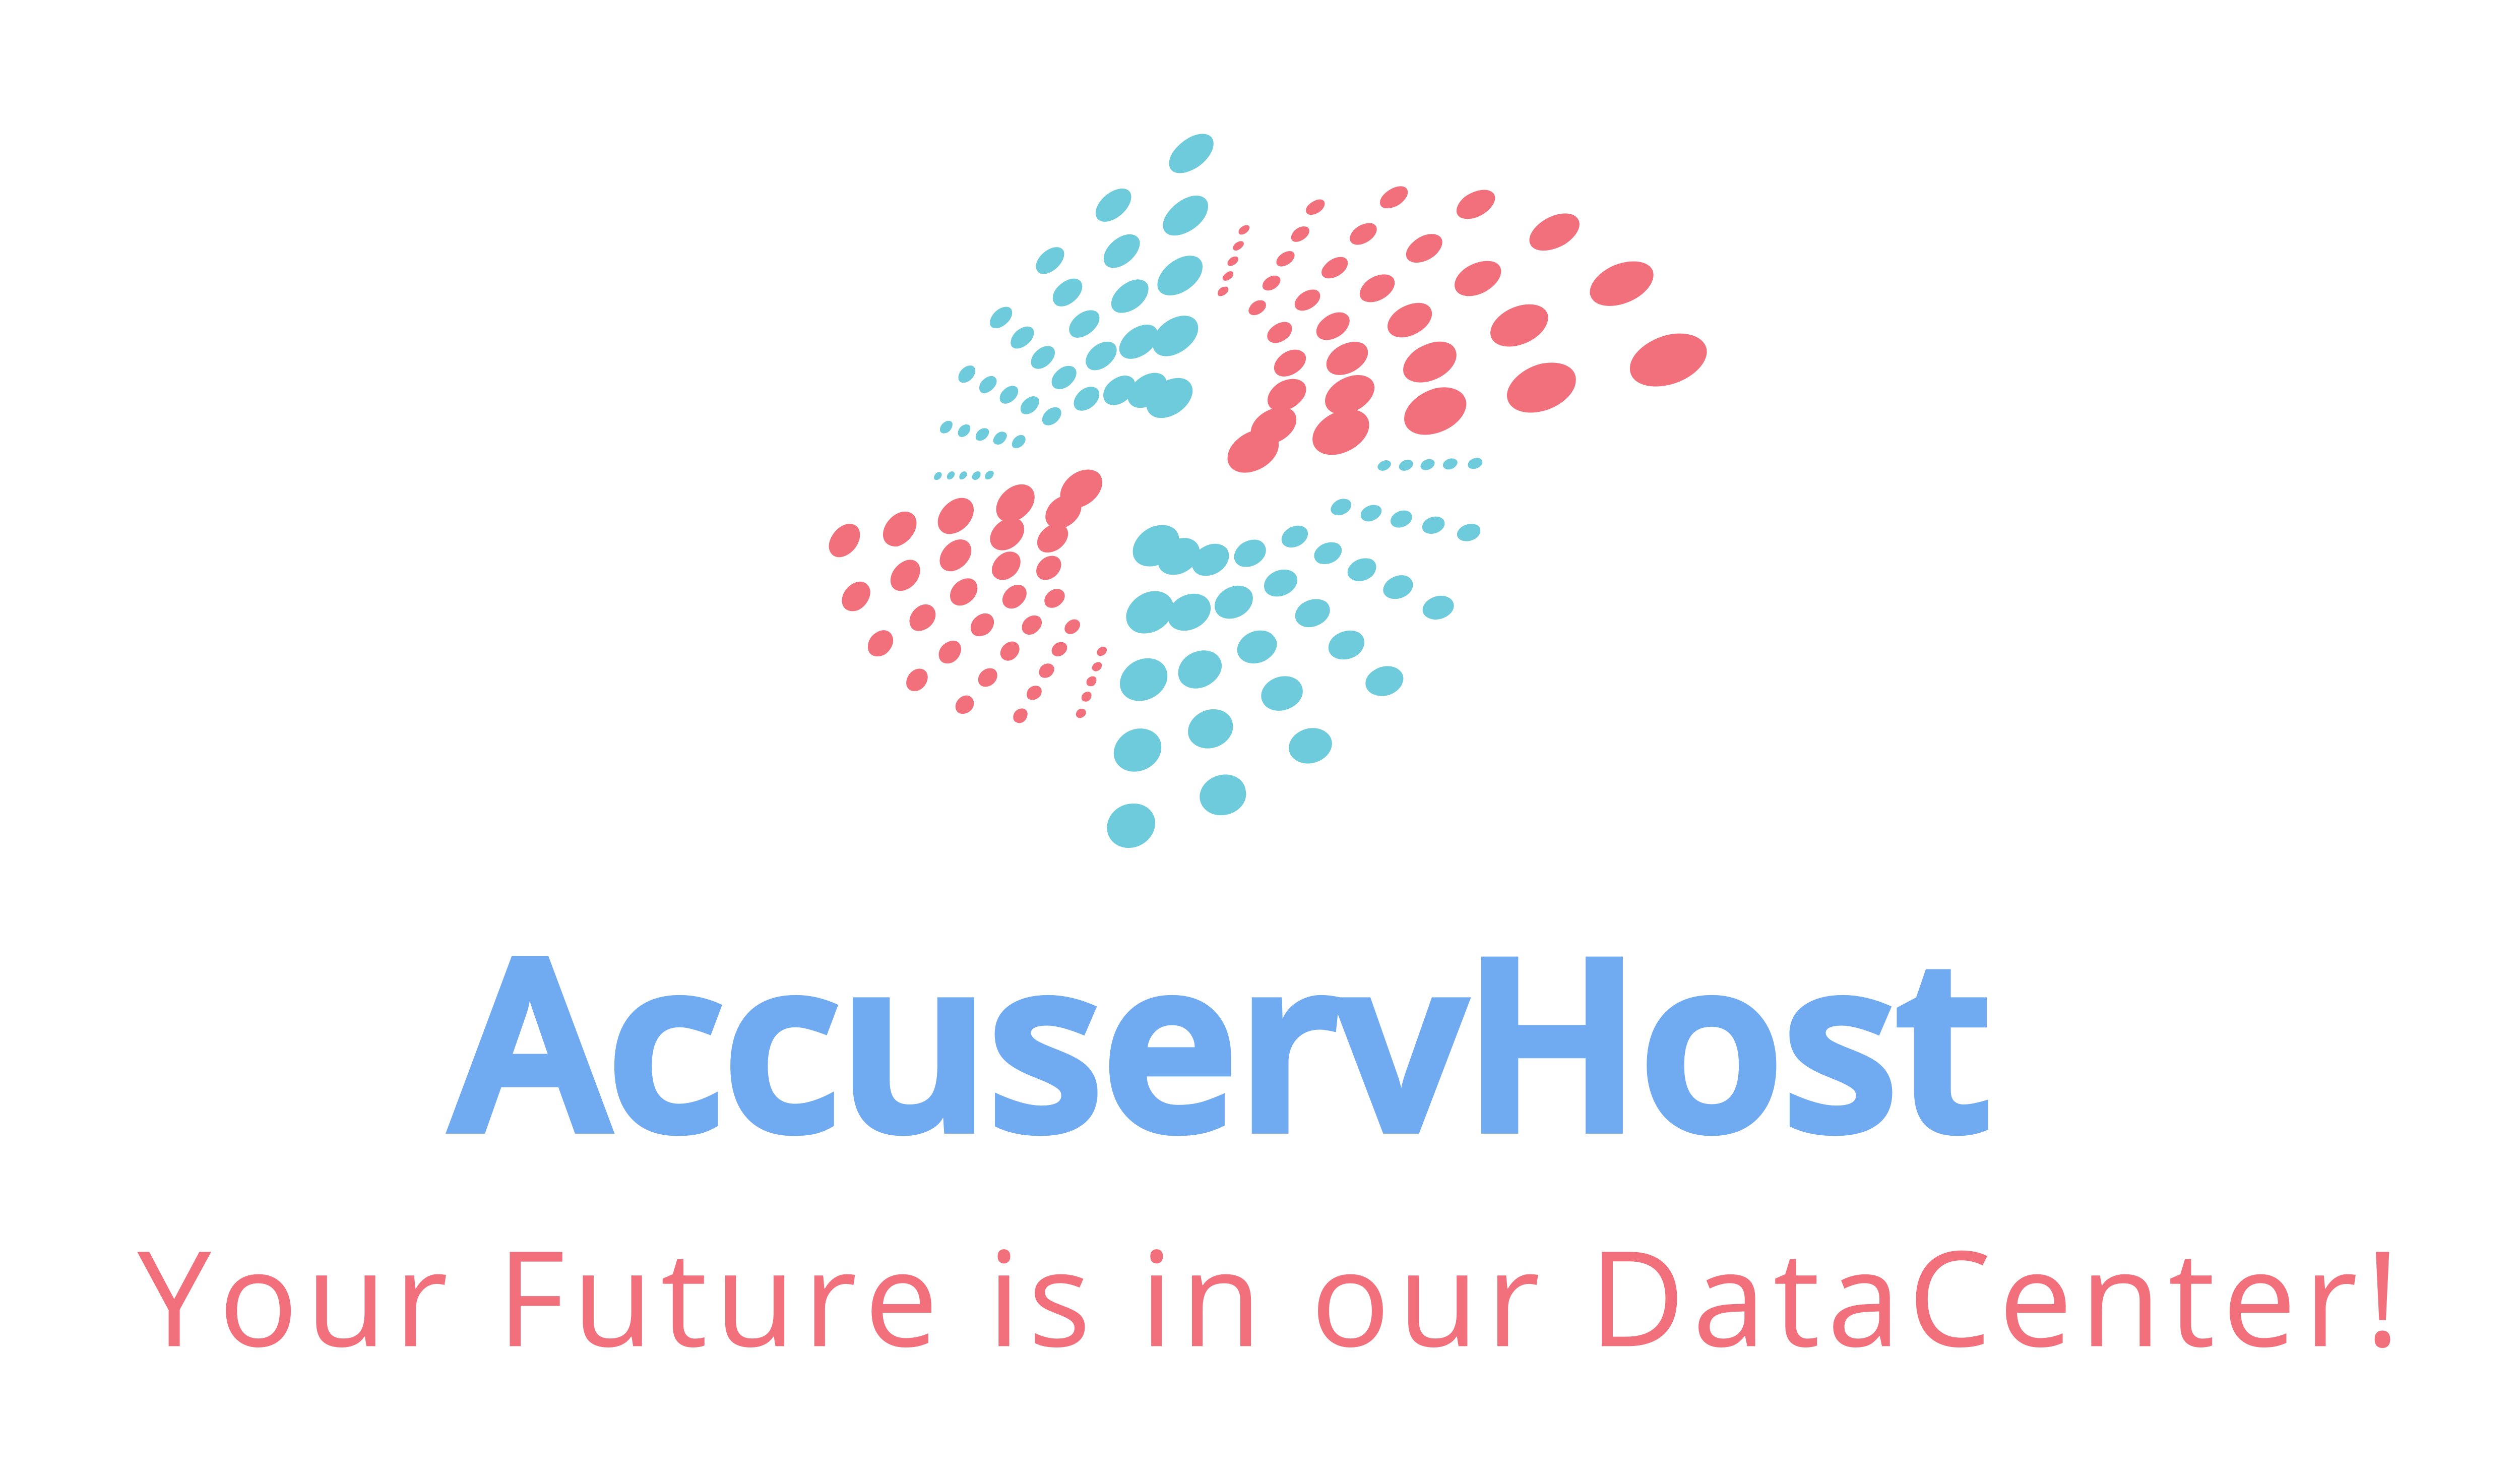 AccuservHost LLC